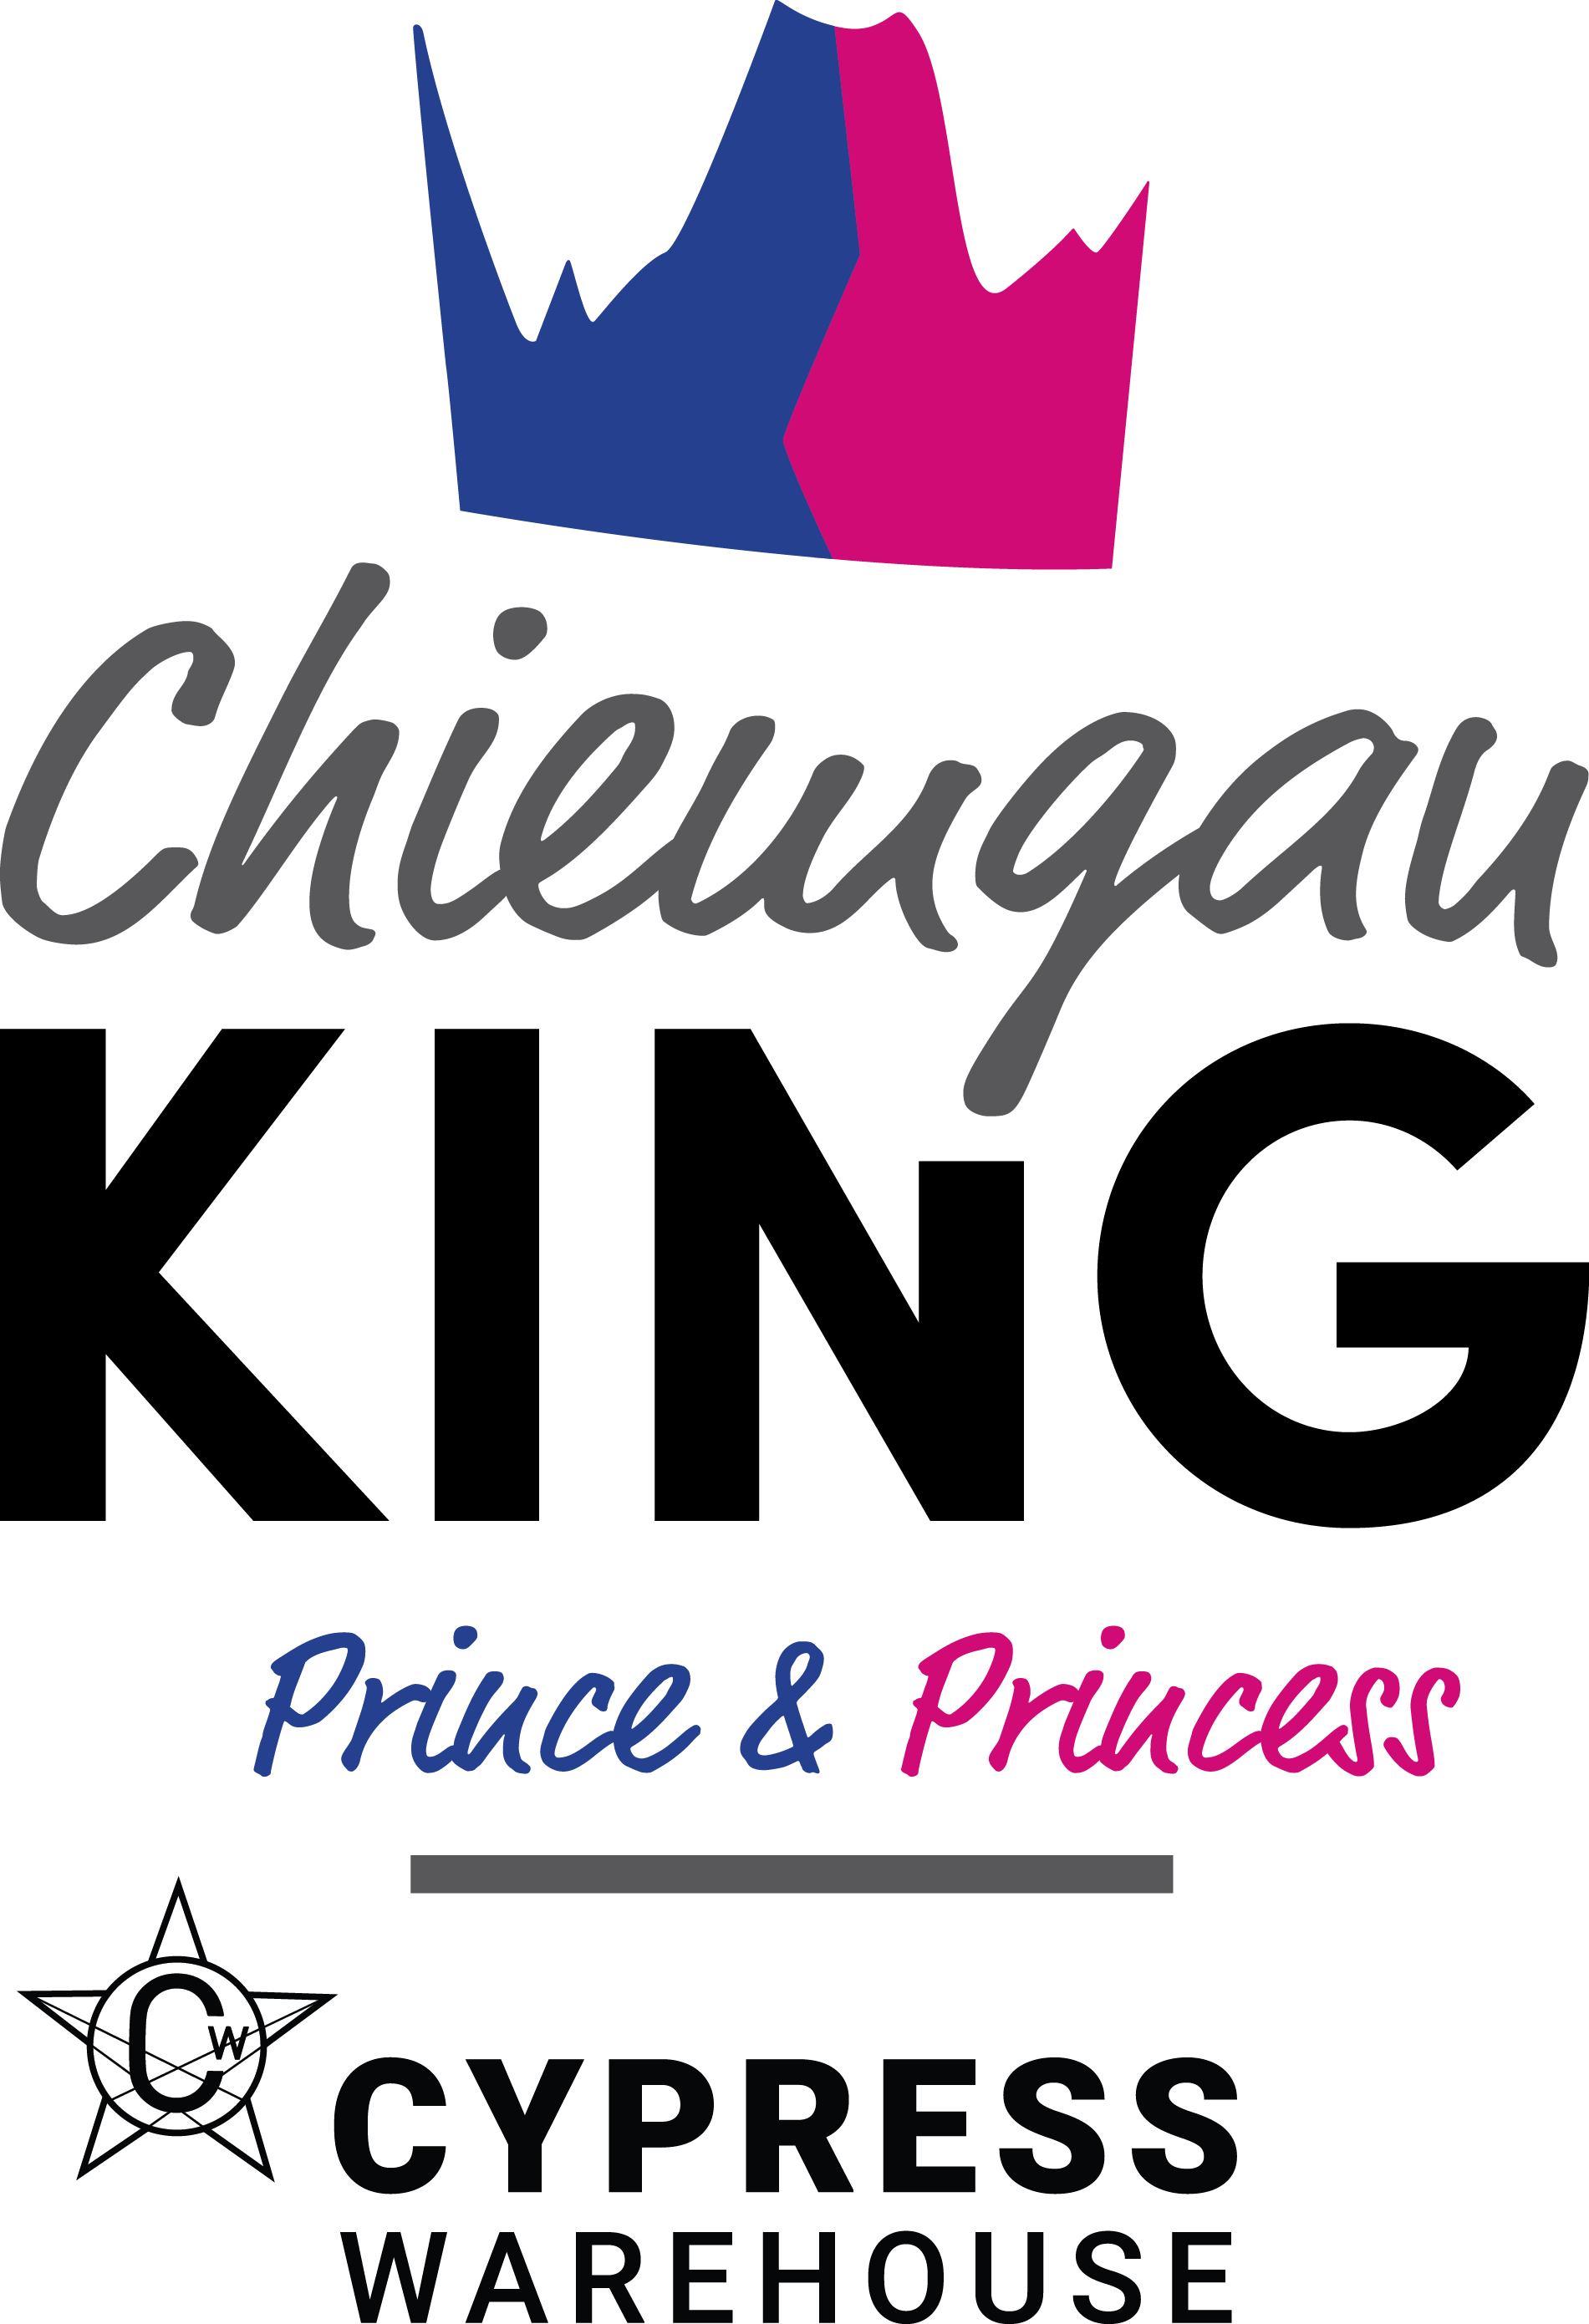 Logo Chiemgau King Prince & Princess